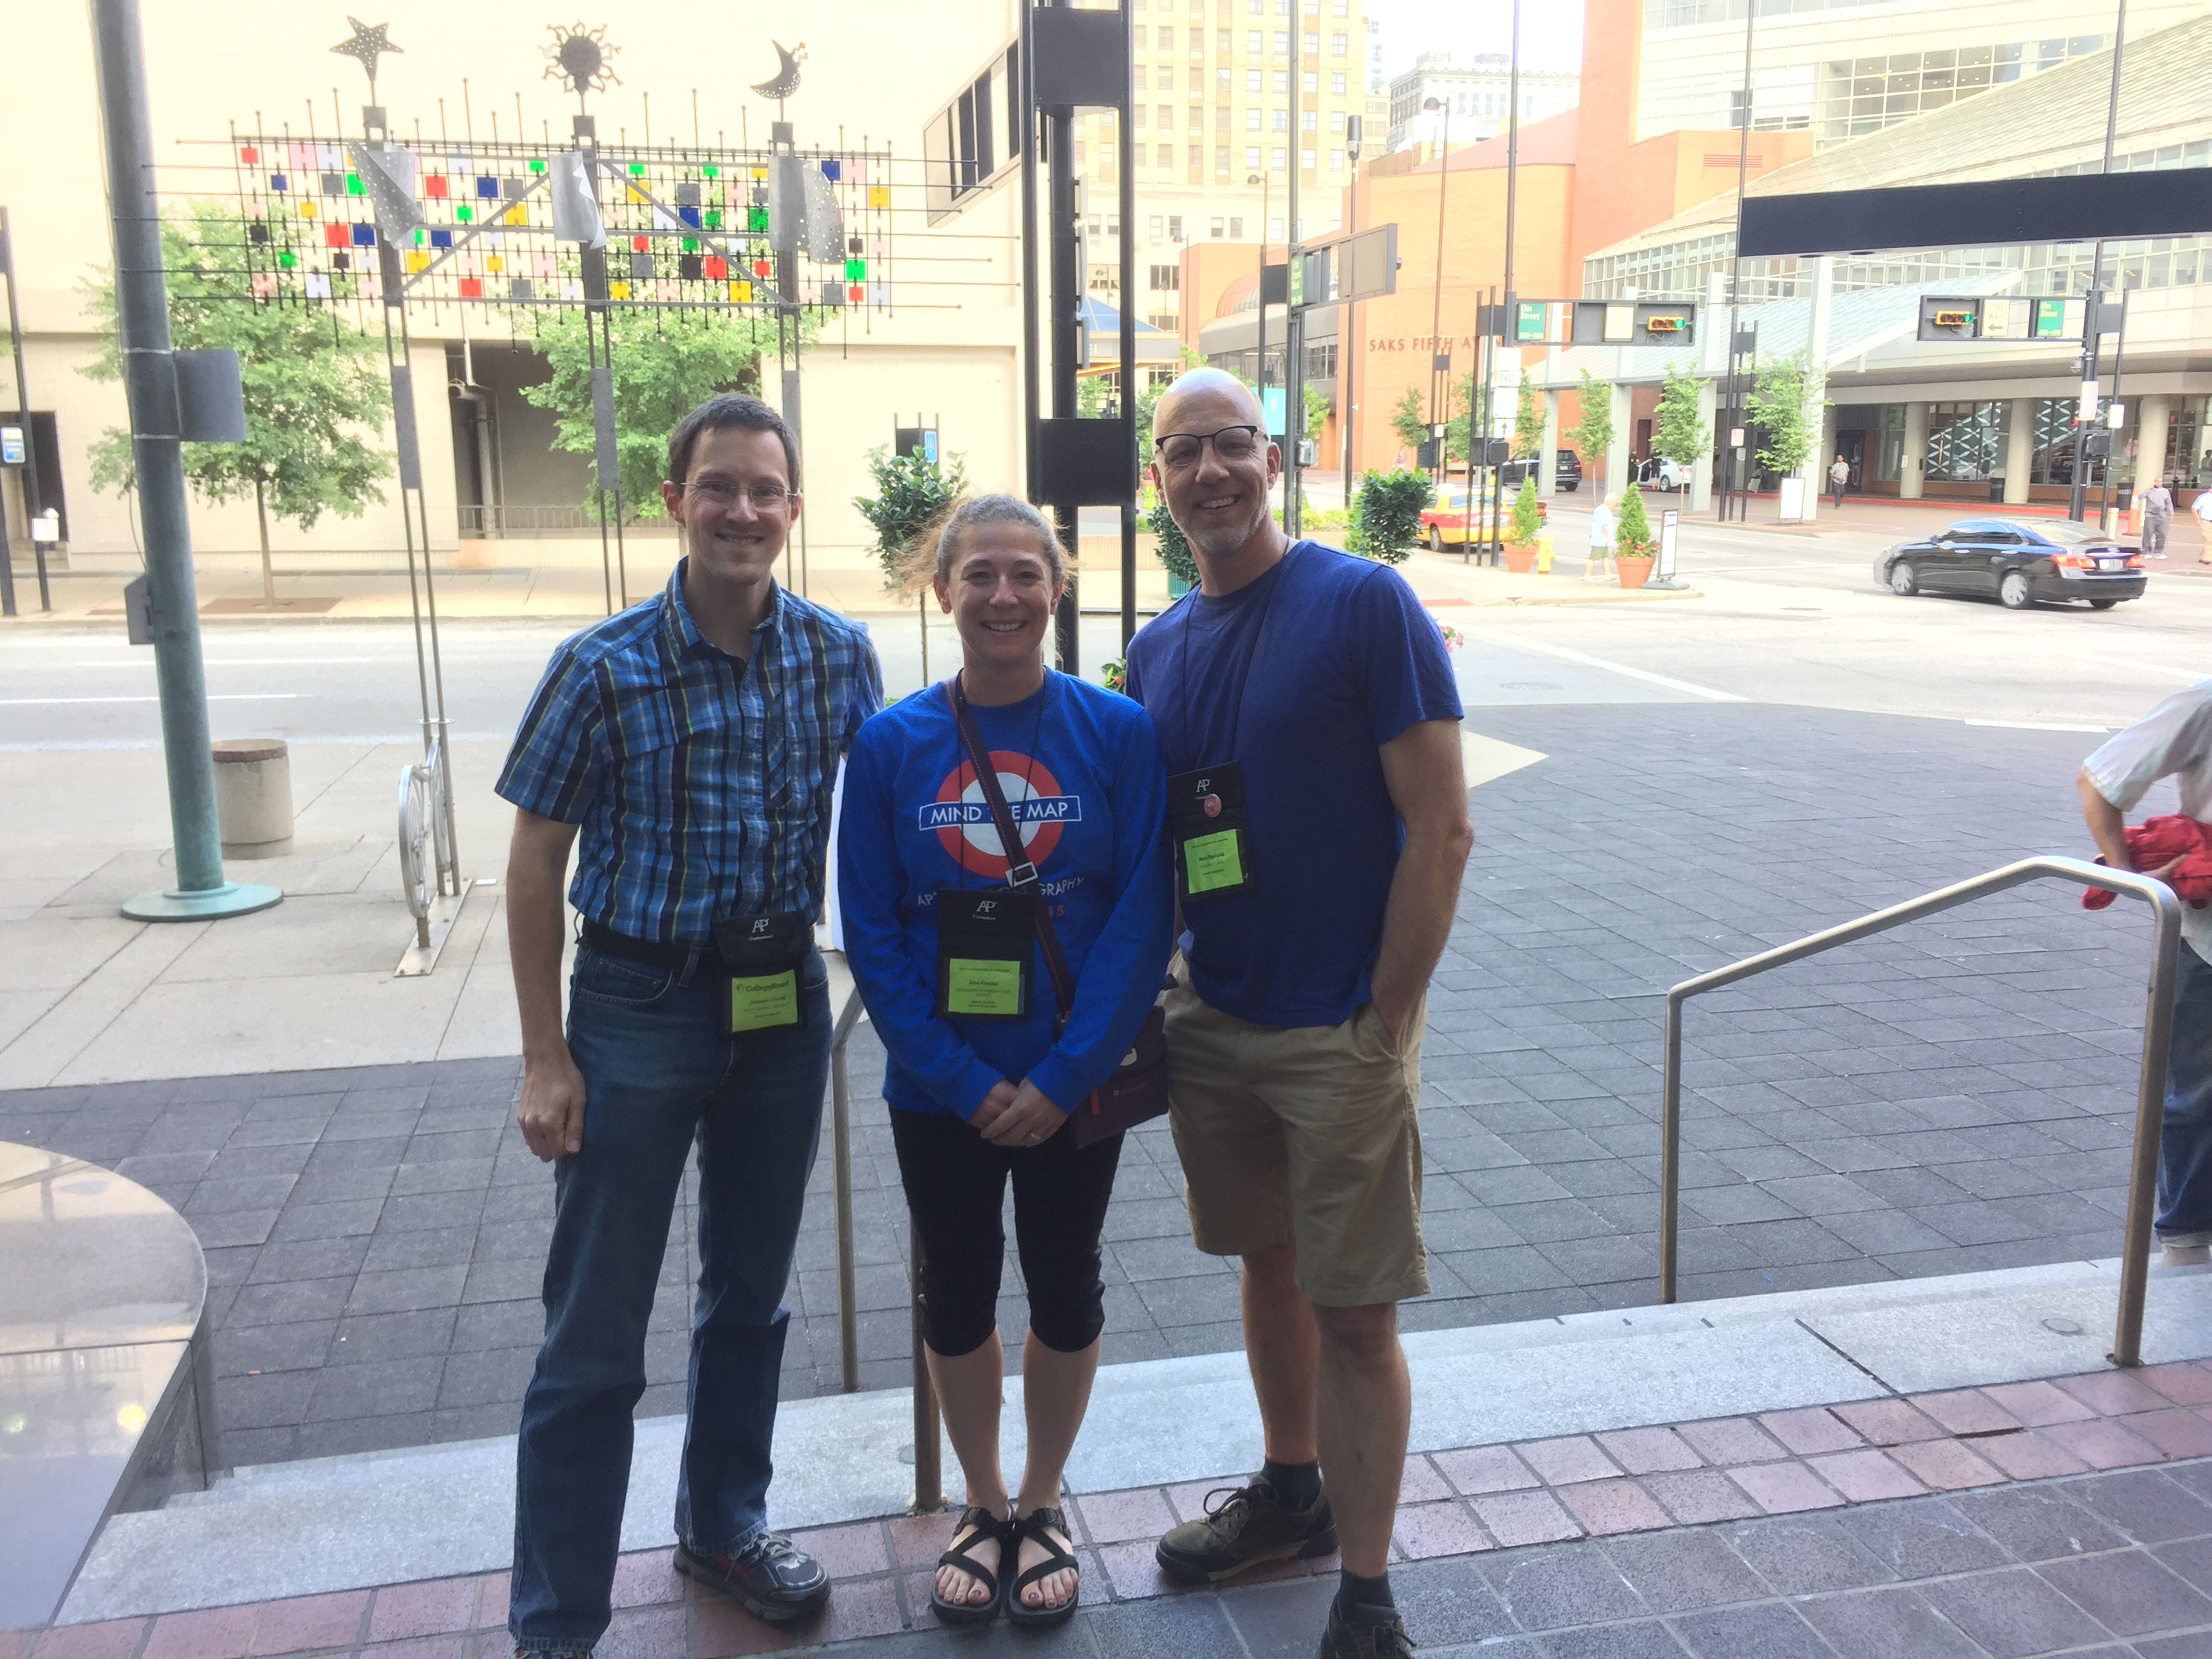 Geographers in Cincinnati